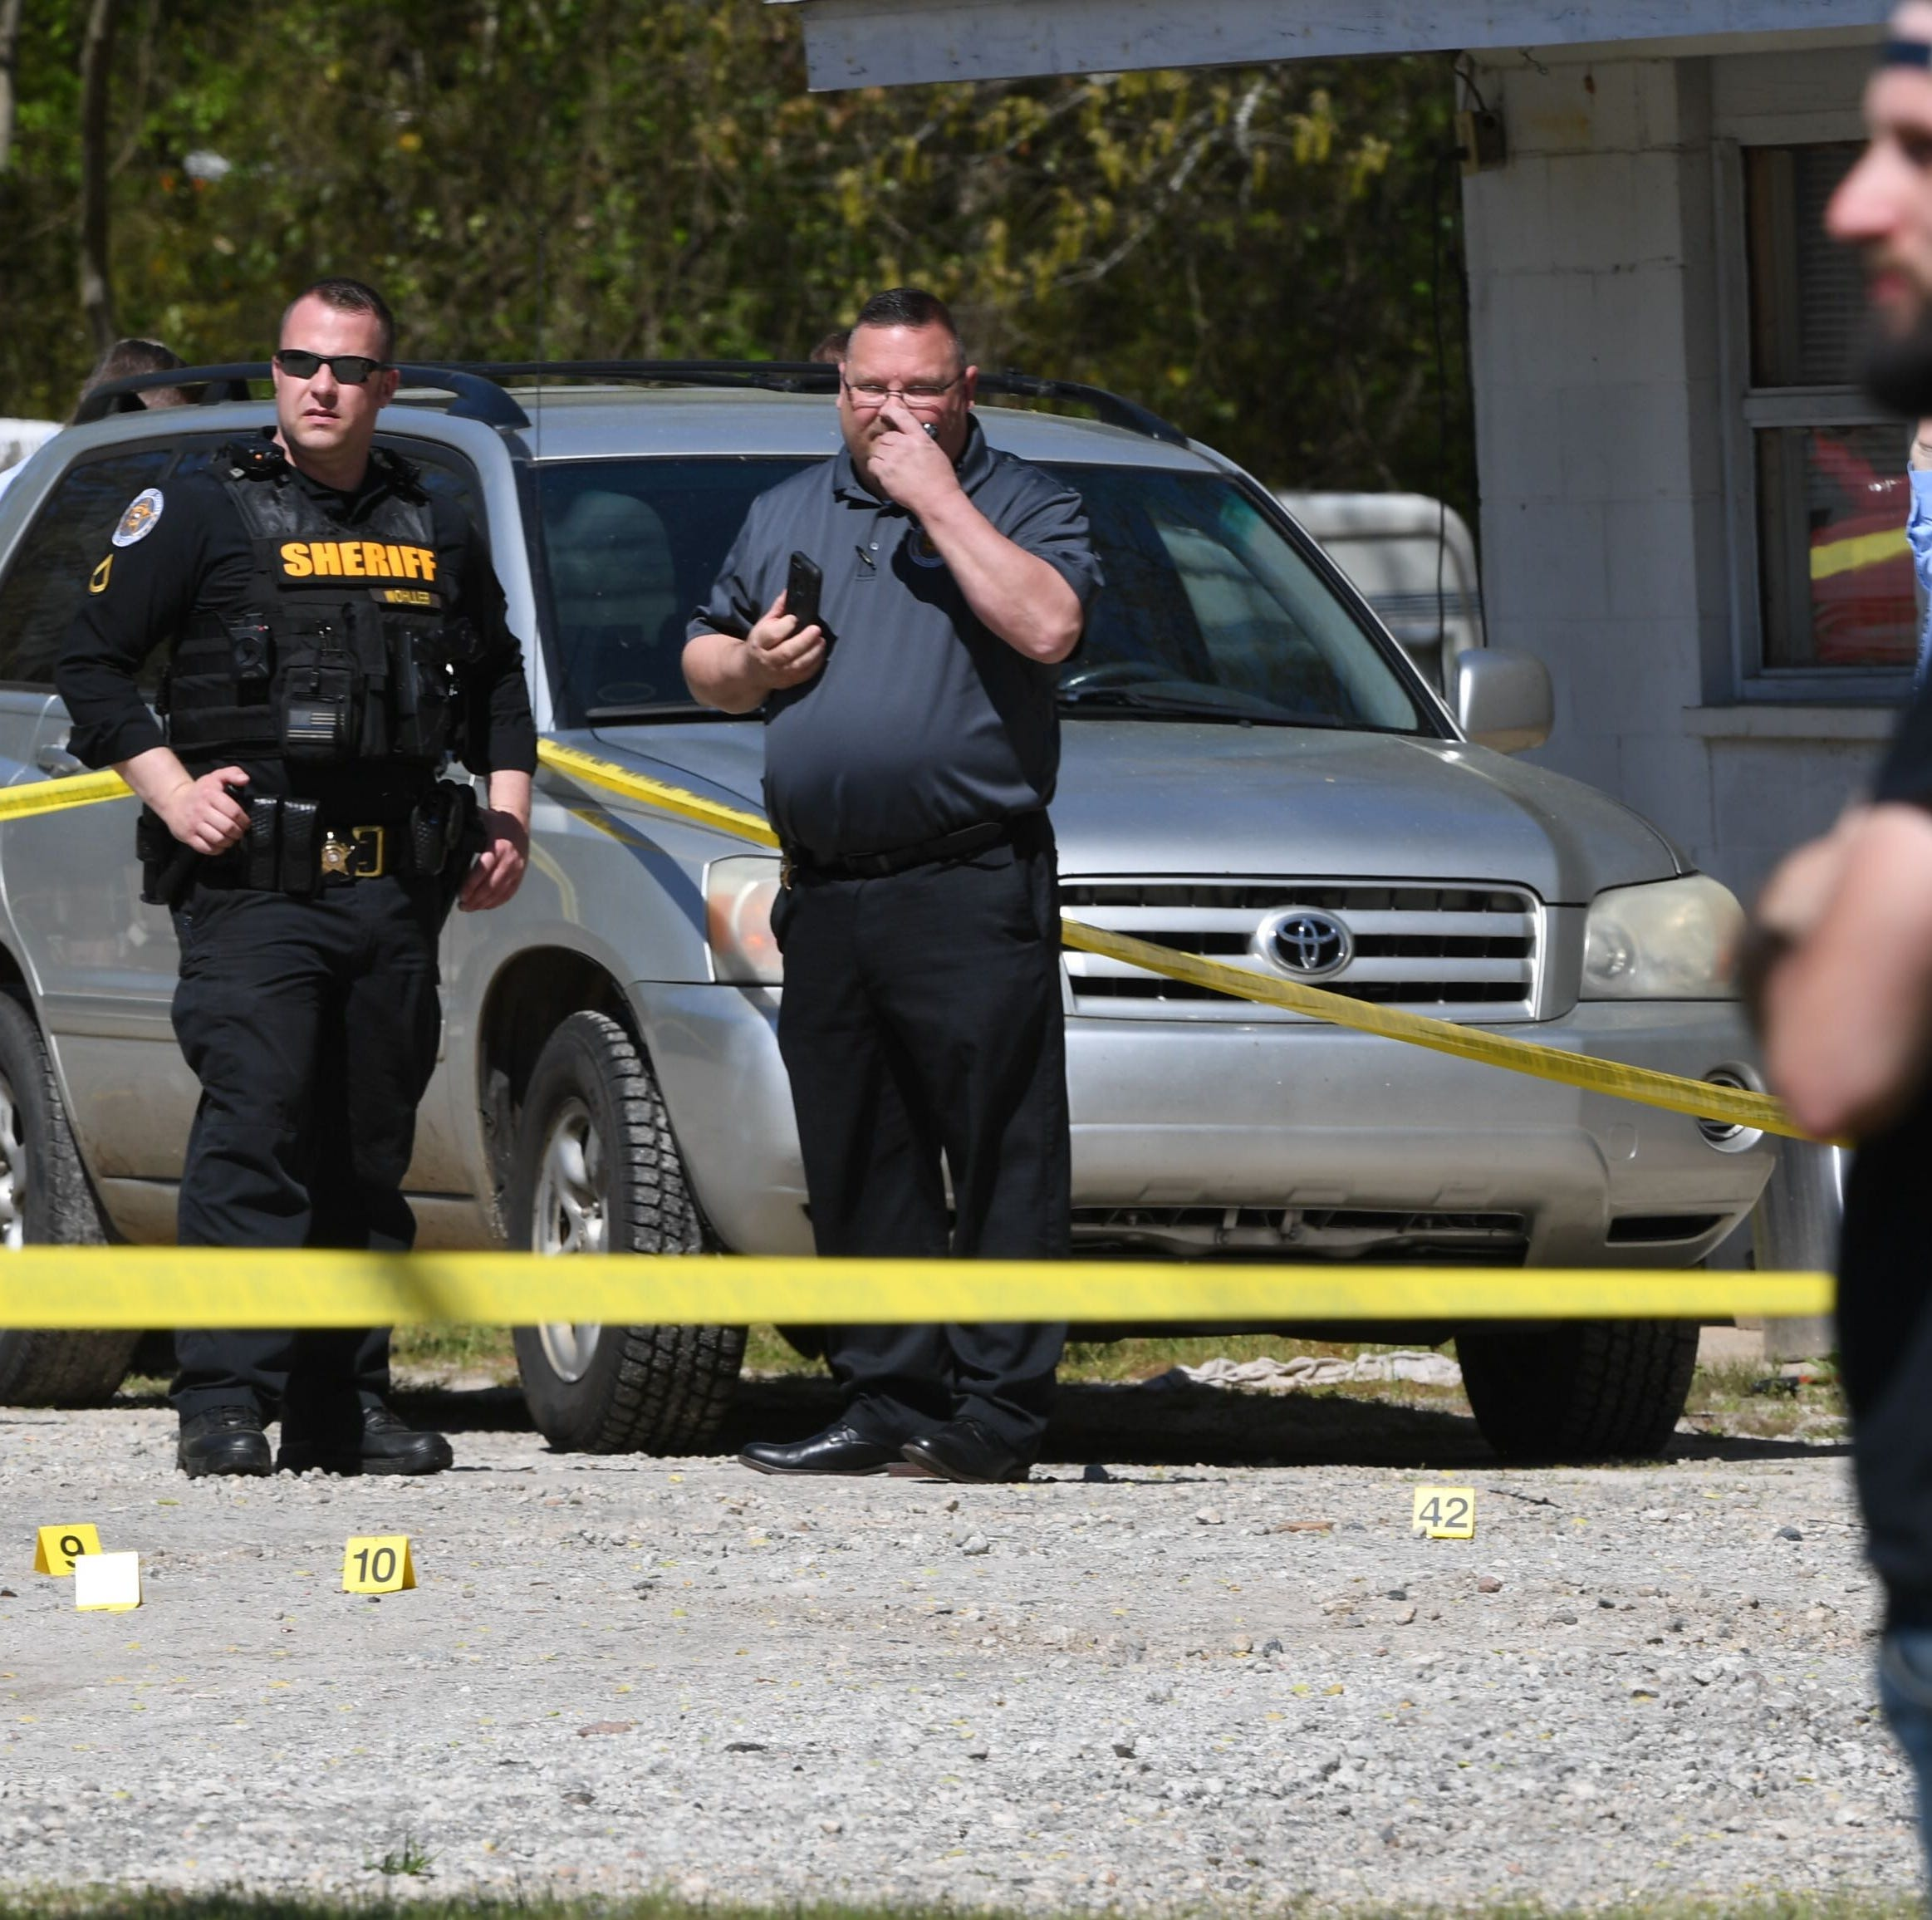 Anderson County Sheriff's Office investigating motel shooting, 2 hospitalized